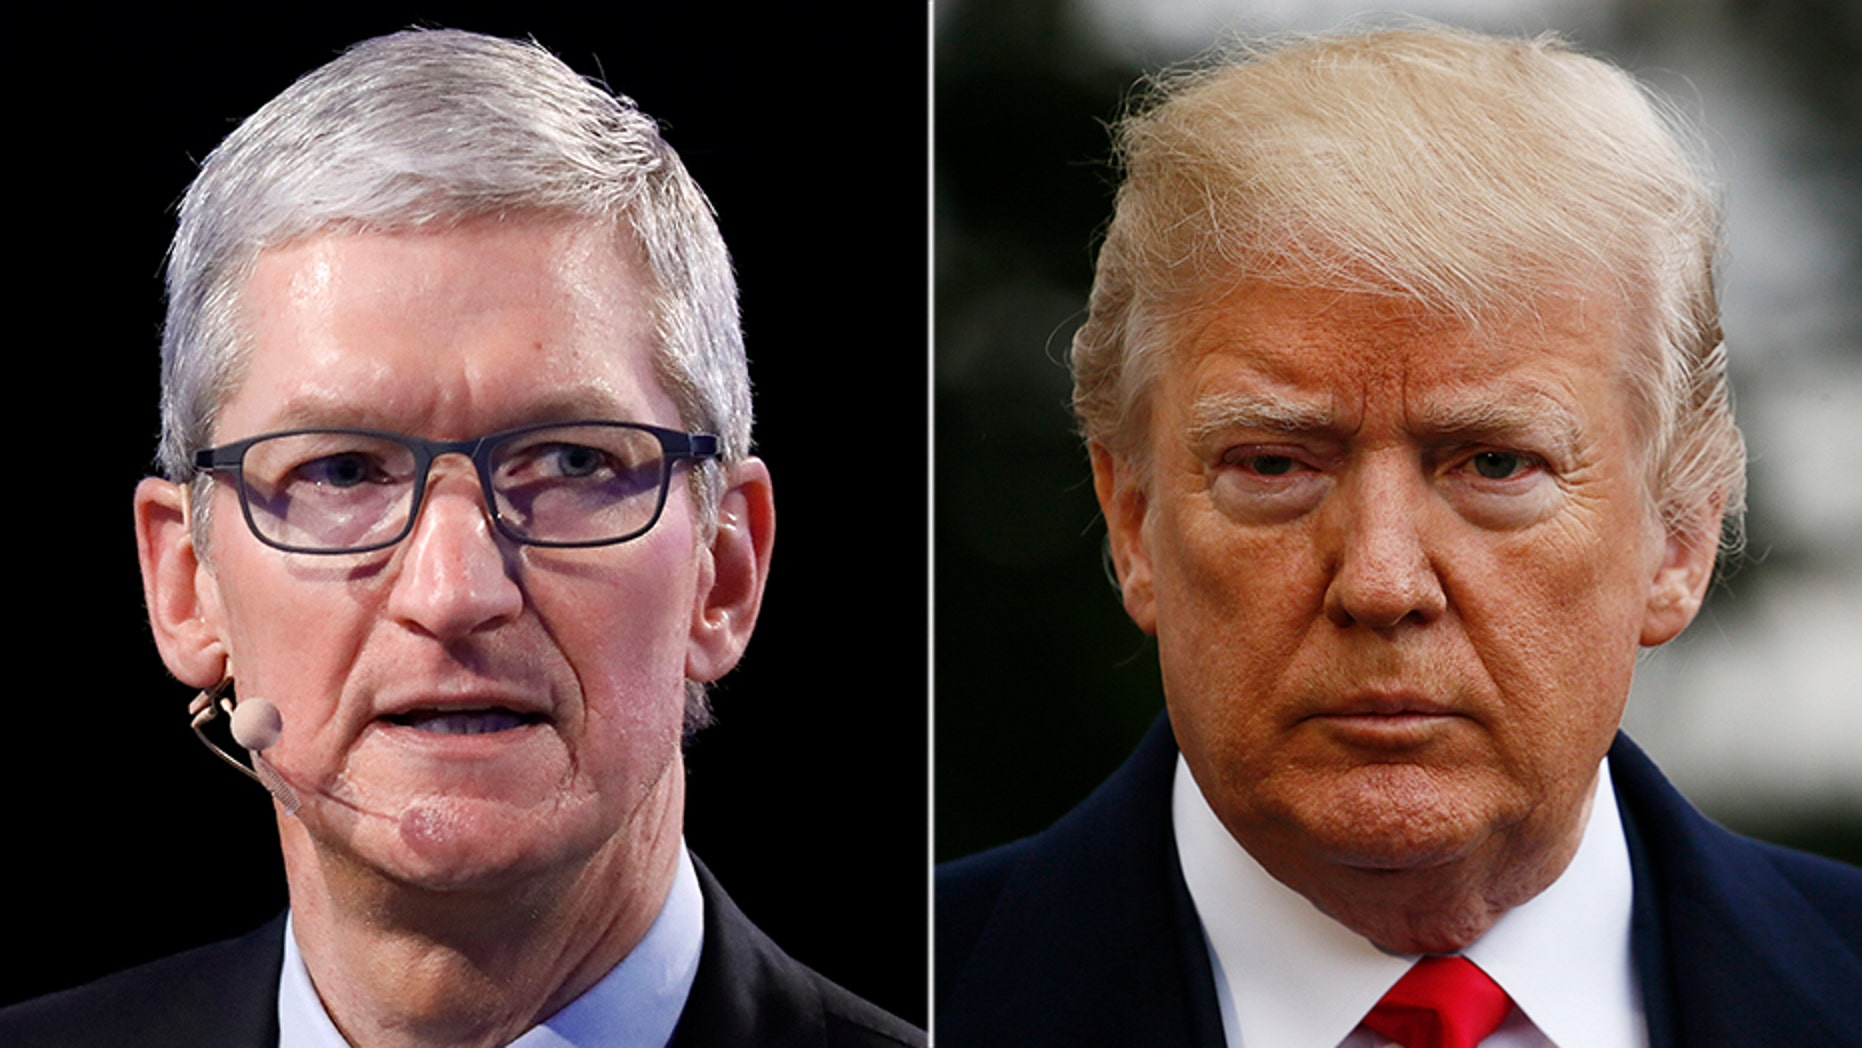 During a TV interview set to air next month, Tim Cook said the two nations need to work together, rather than go at it alone.